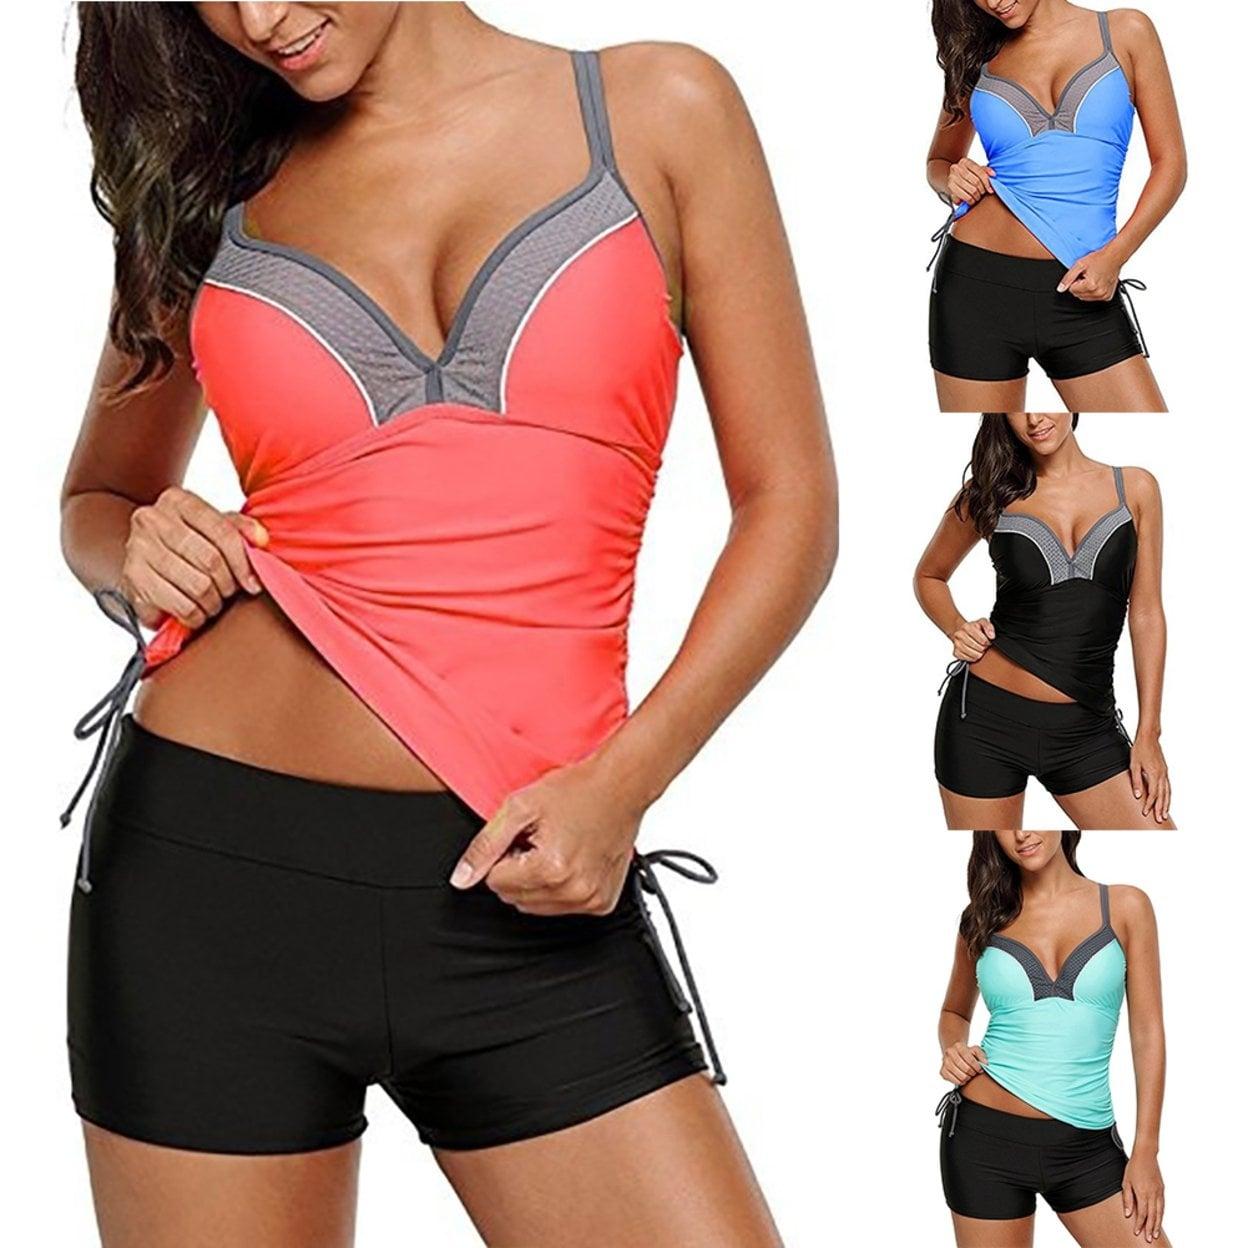 57c94f2ae Swimwear | Find Great Women's Clothing Deals Shopping at Overstock